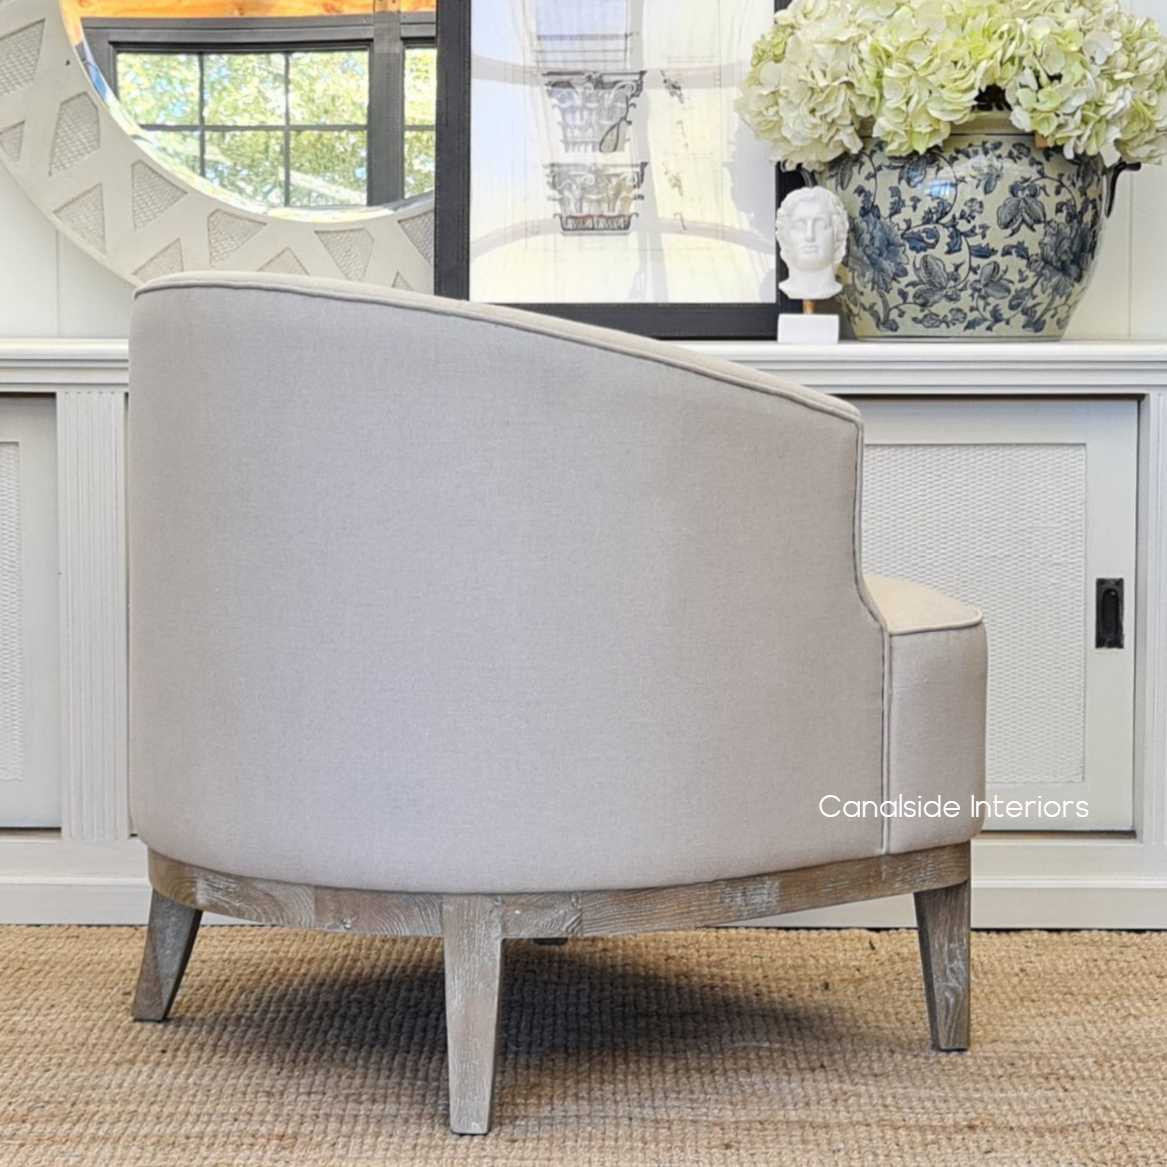 Hamilton Occasional Tub Armchair  CHAIRS, HAMPTONS Style, PLANTATION Style, CHAIRS Lounge, LIVING Room, LIVING Chairs, bedroom